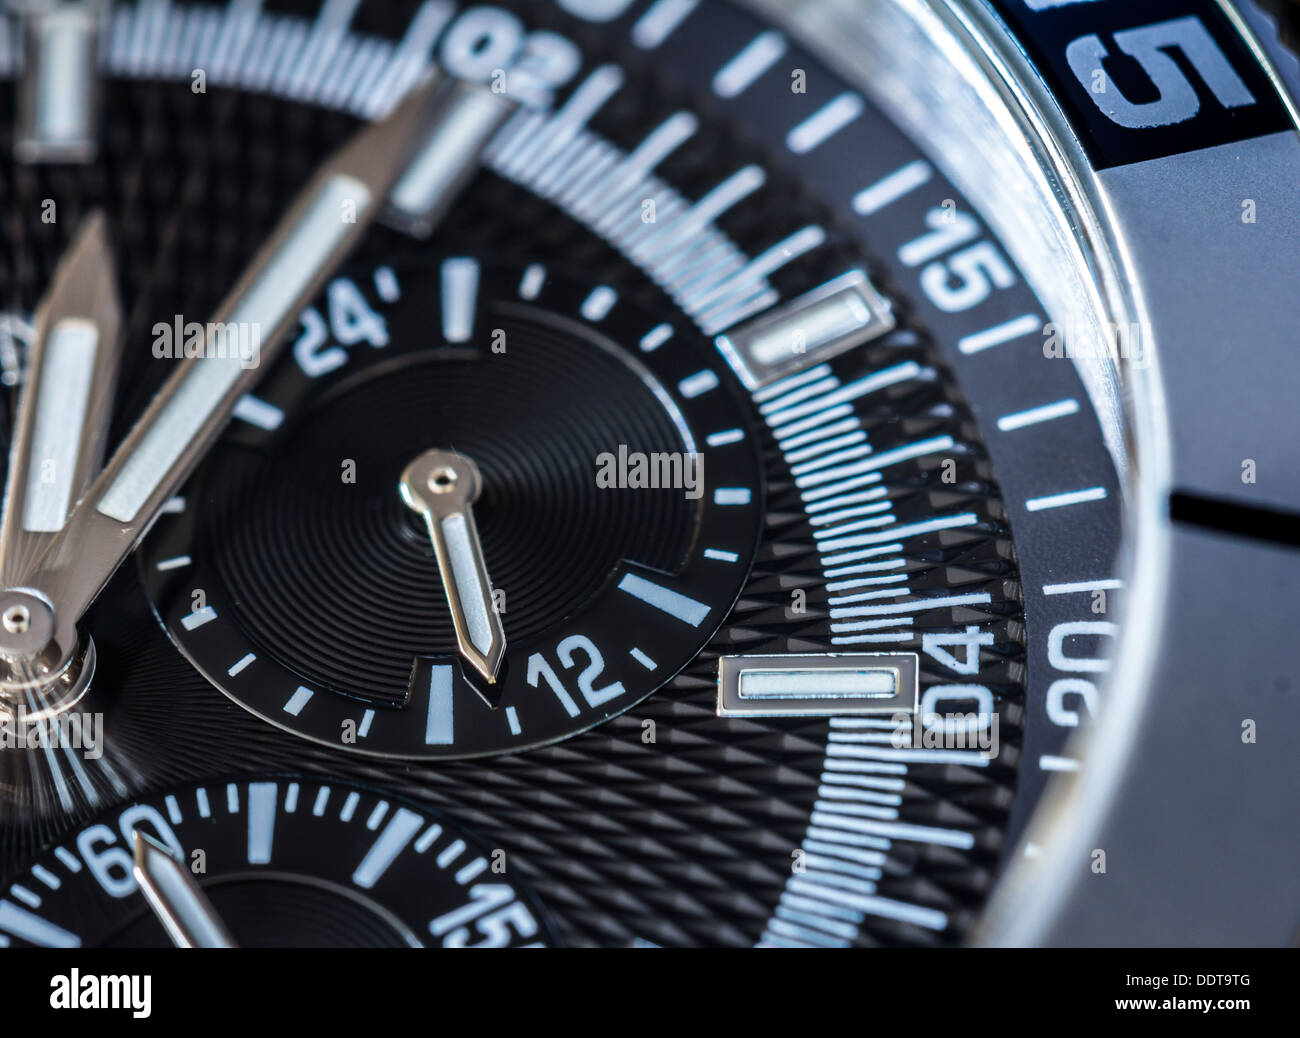 Chronograph detail. Selective focus, shallow depth of field. Stock Photo